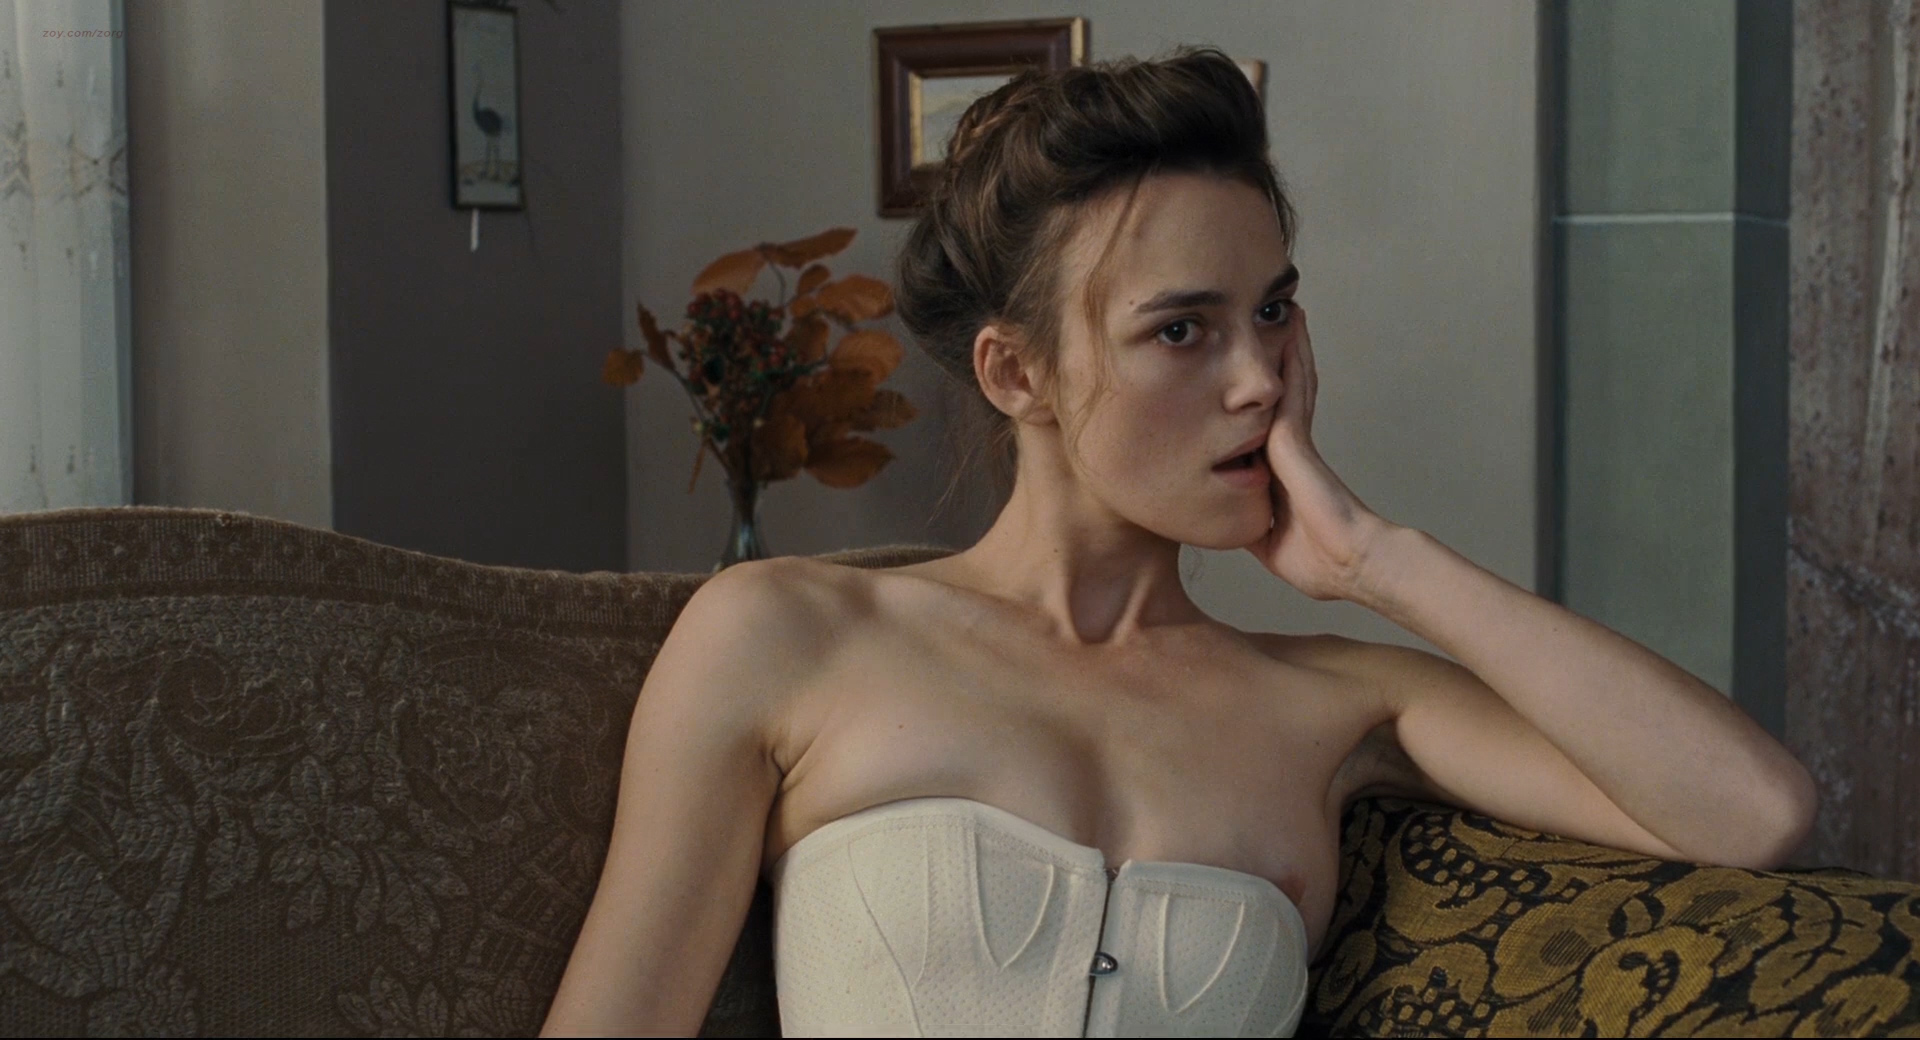 Topless keira knightley nude